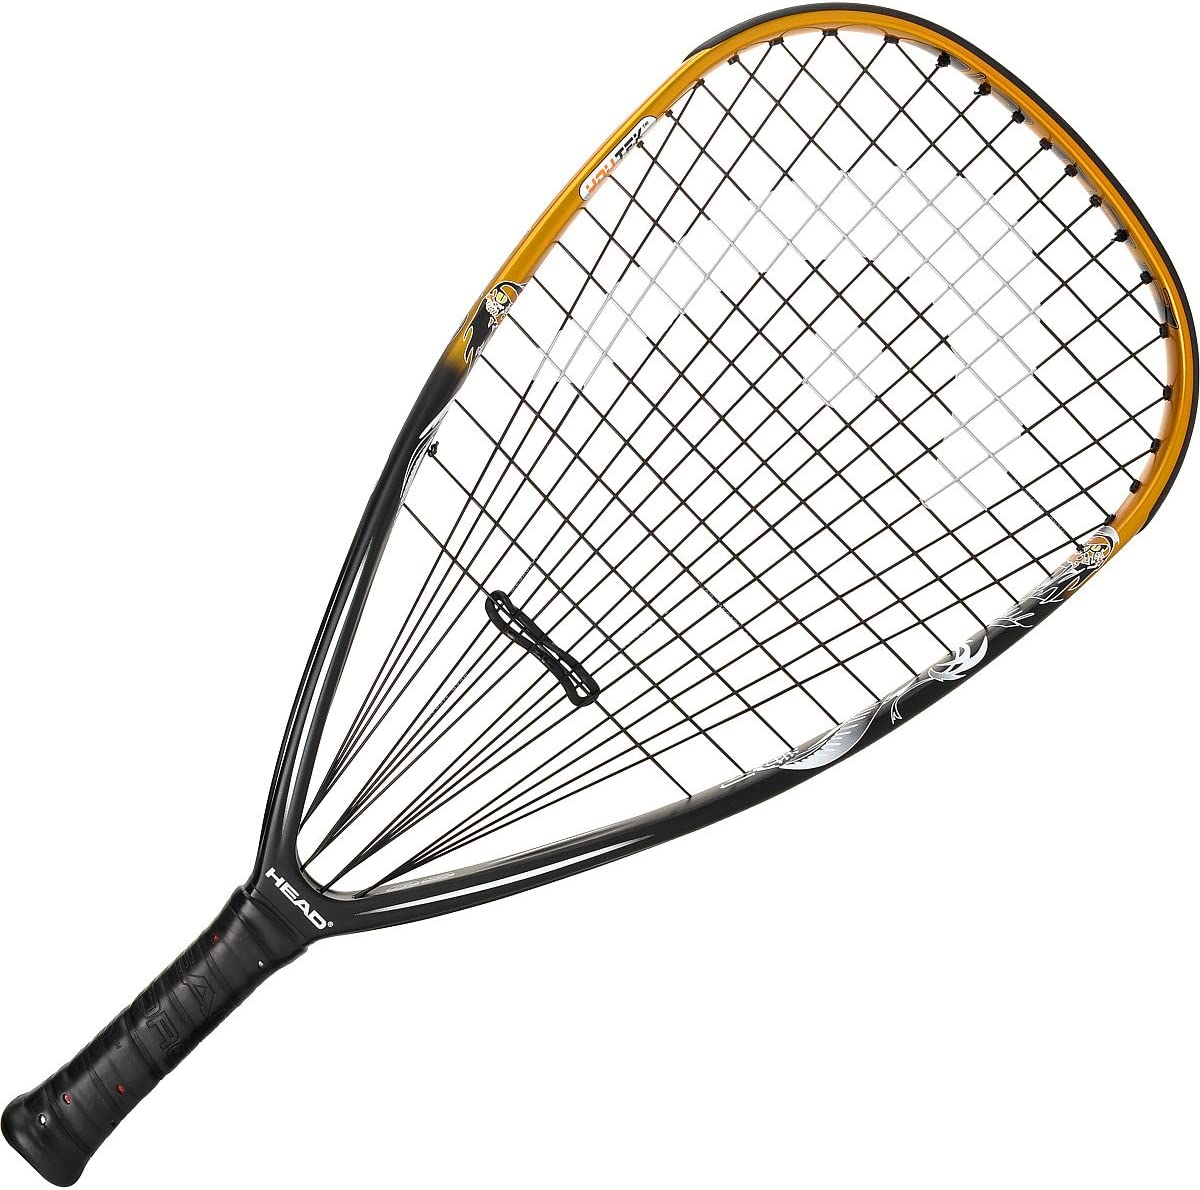 Head TKO Racquetball Racquet – Black Gold White 3 5 8 Misc.